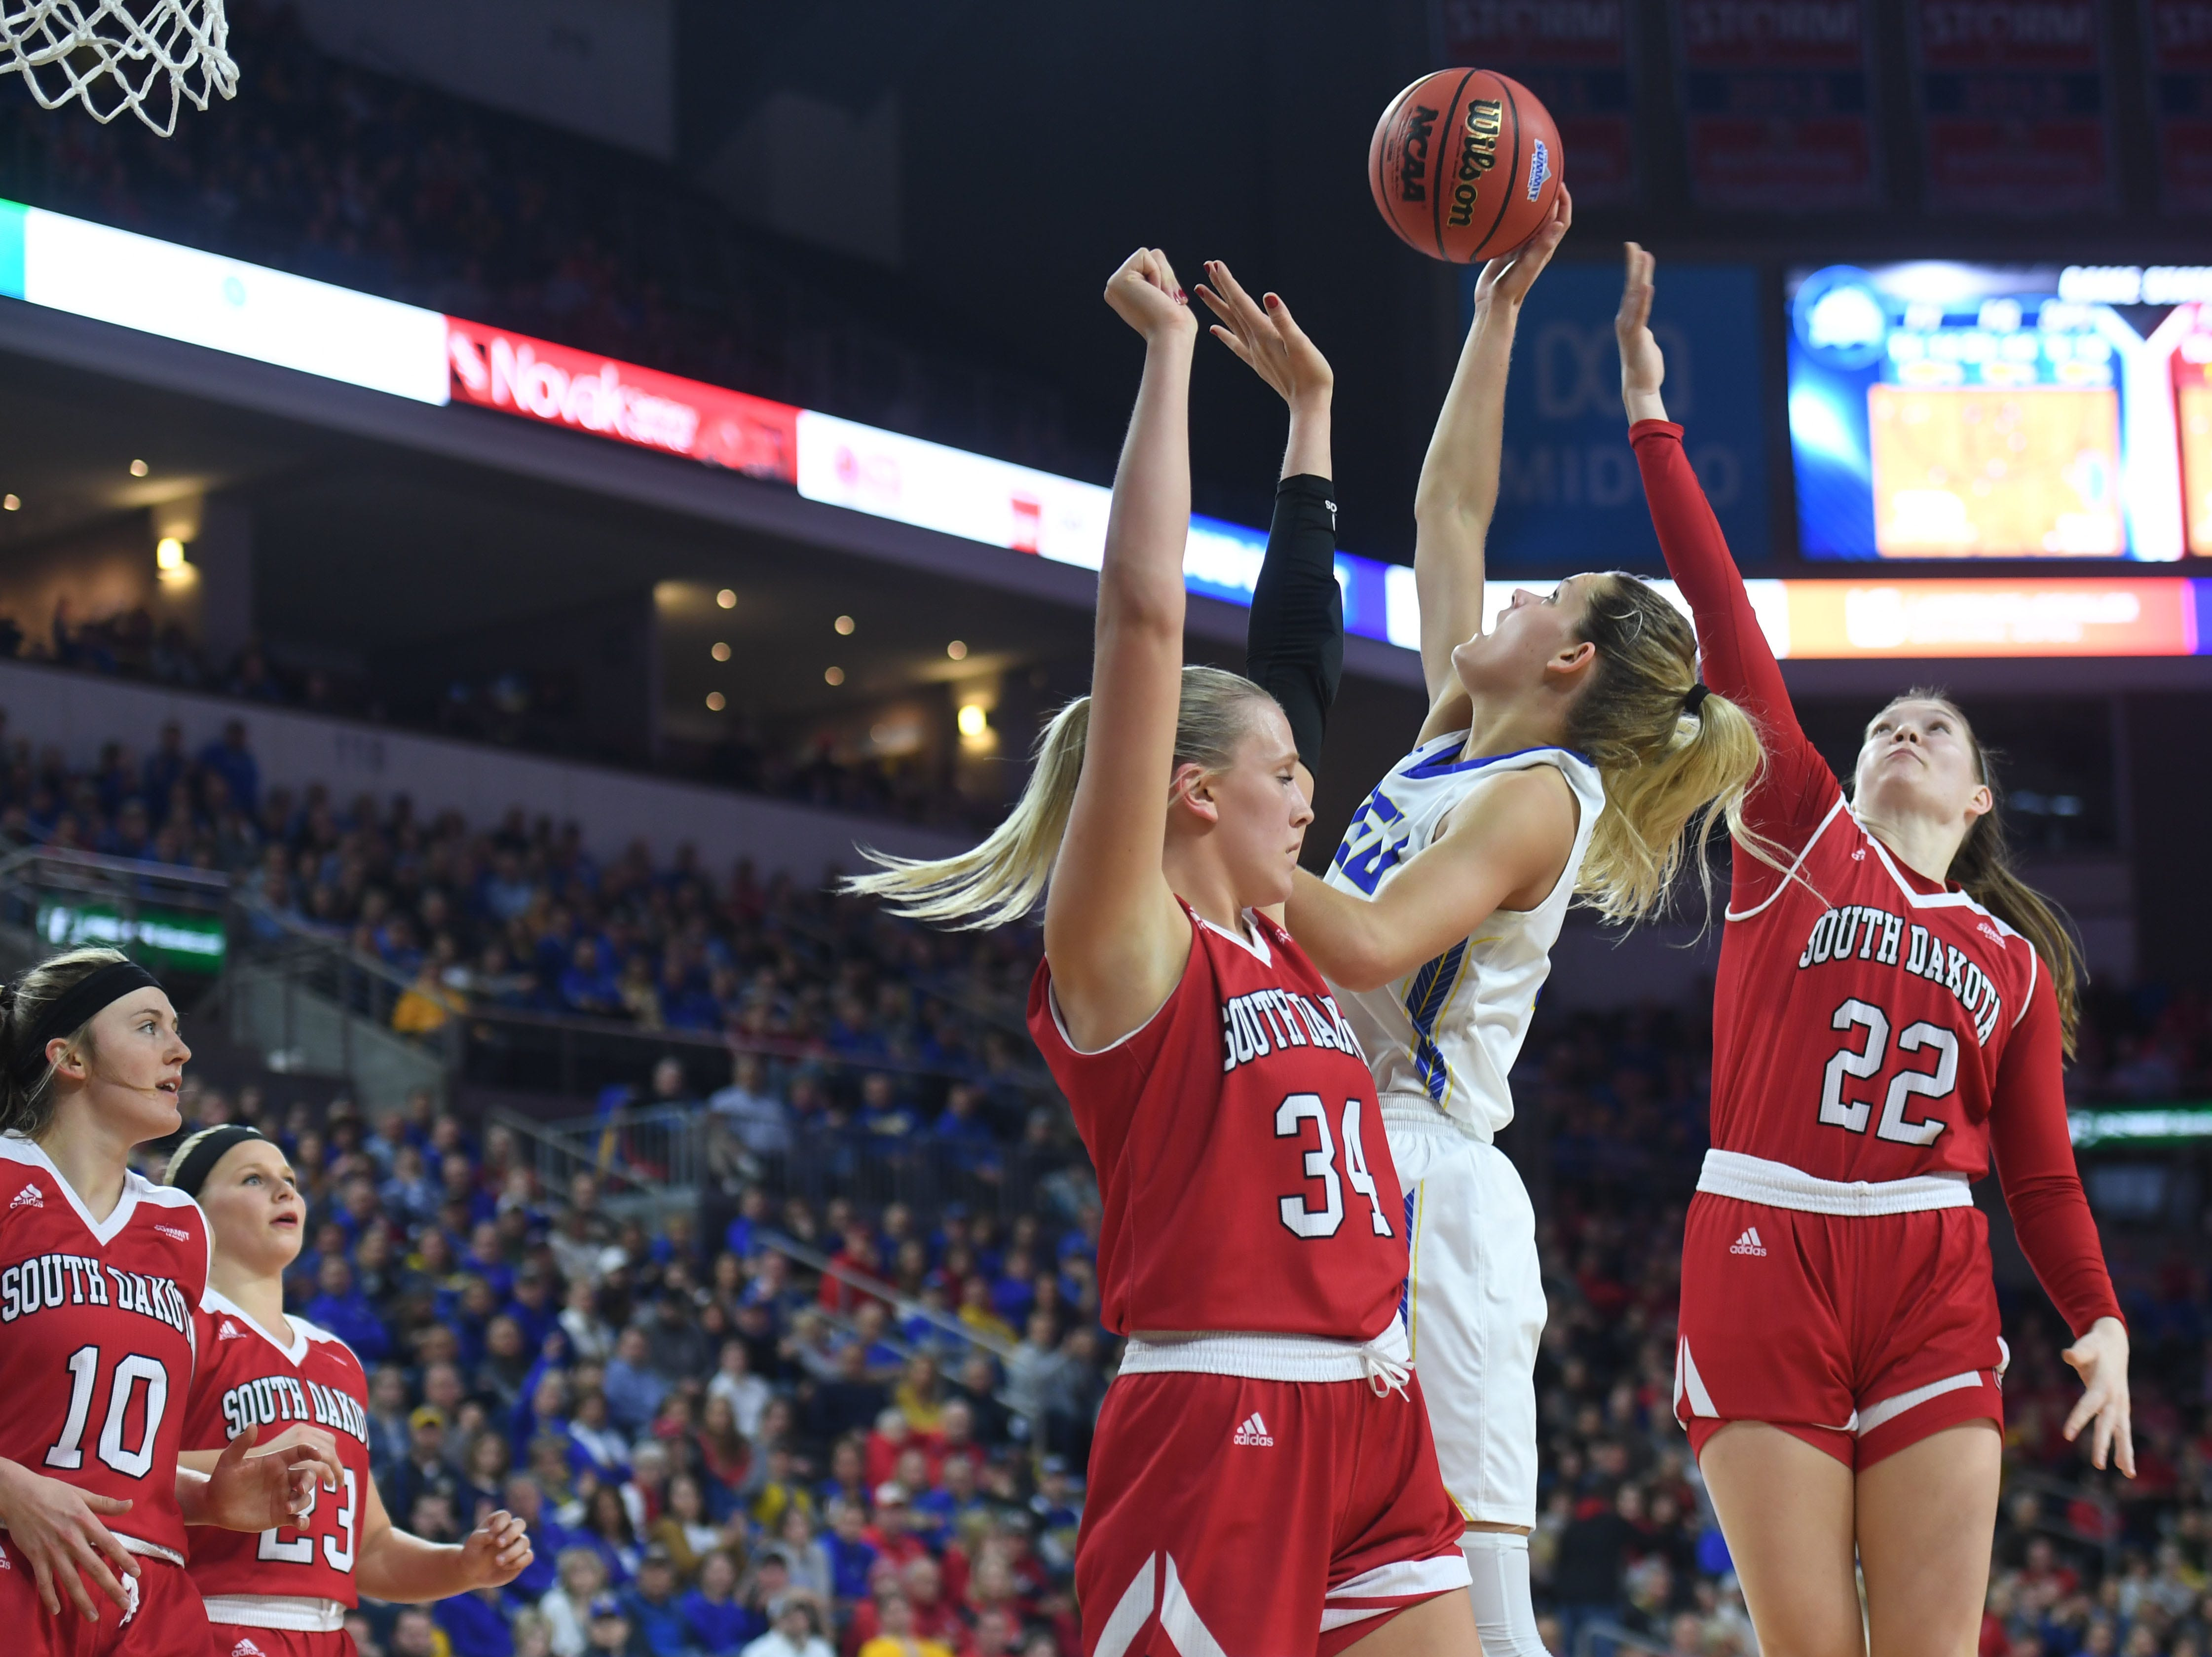 SDSU's Tylee Irwin goes against USD defense under the net during the game Tuesday, March 12, in the Summit League women's championship at the Denny Sanford Premier Center in Sioux Falls.